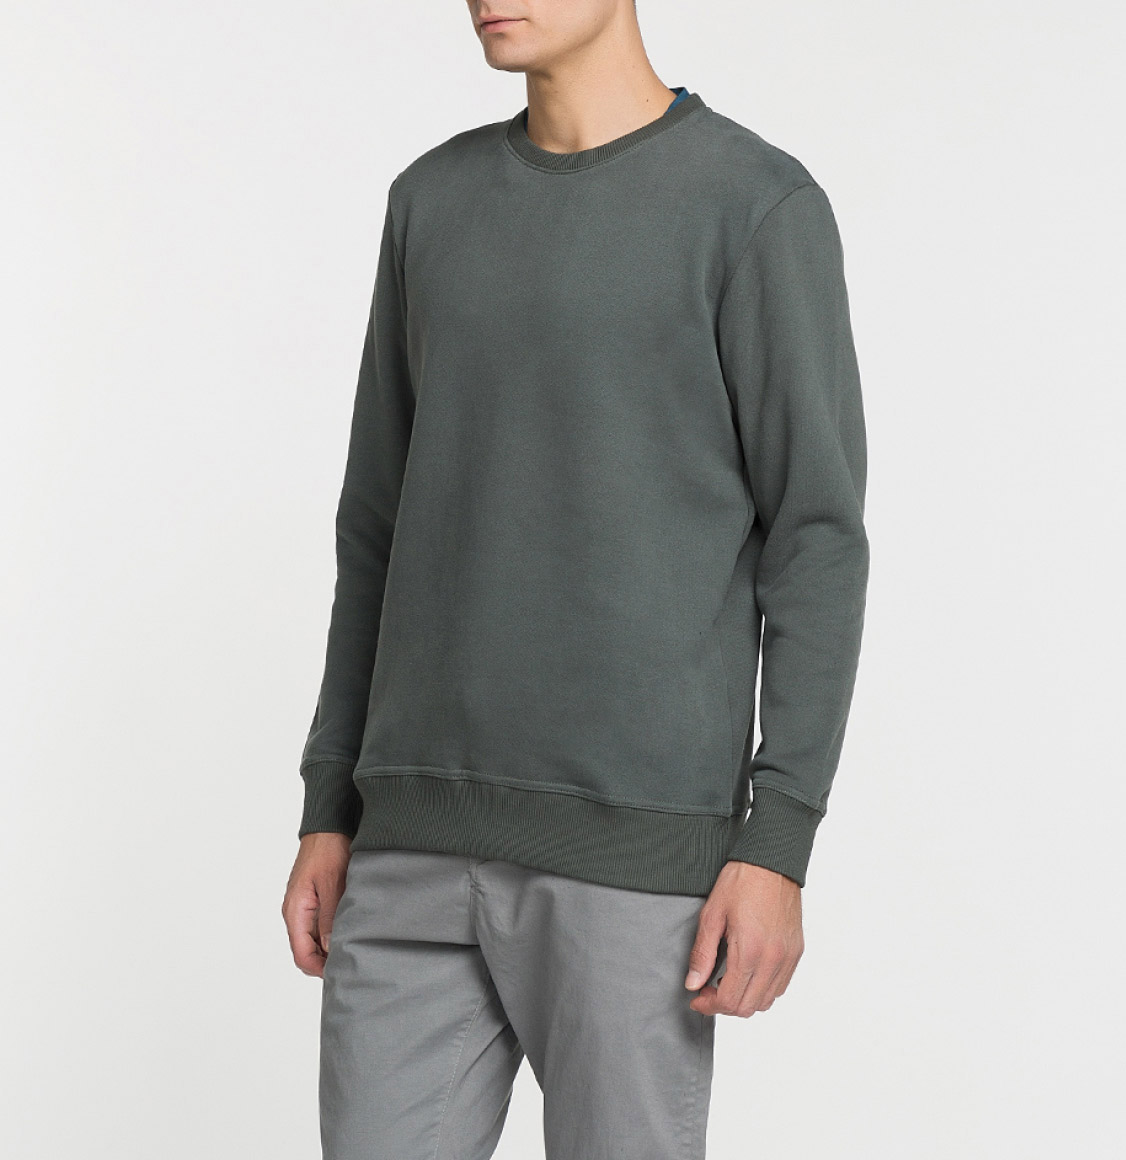 Crew Neck Sweatshirt Military Khaki